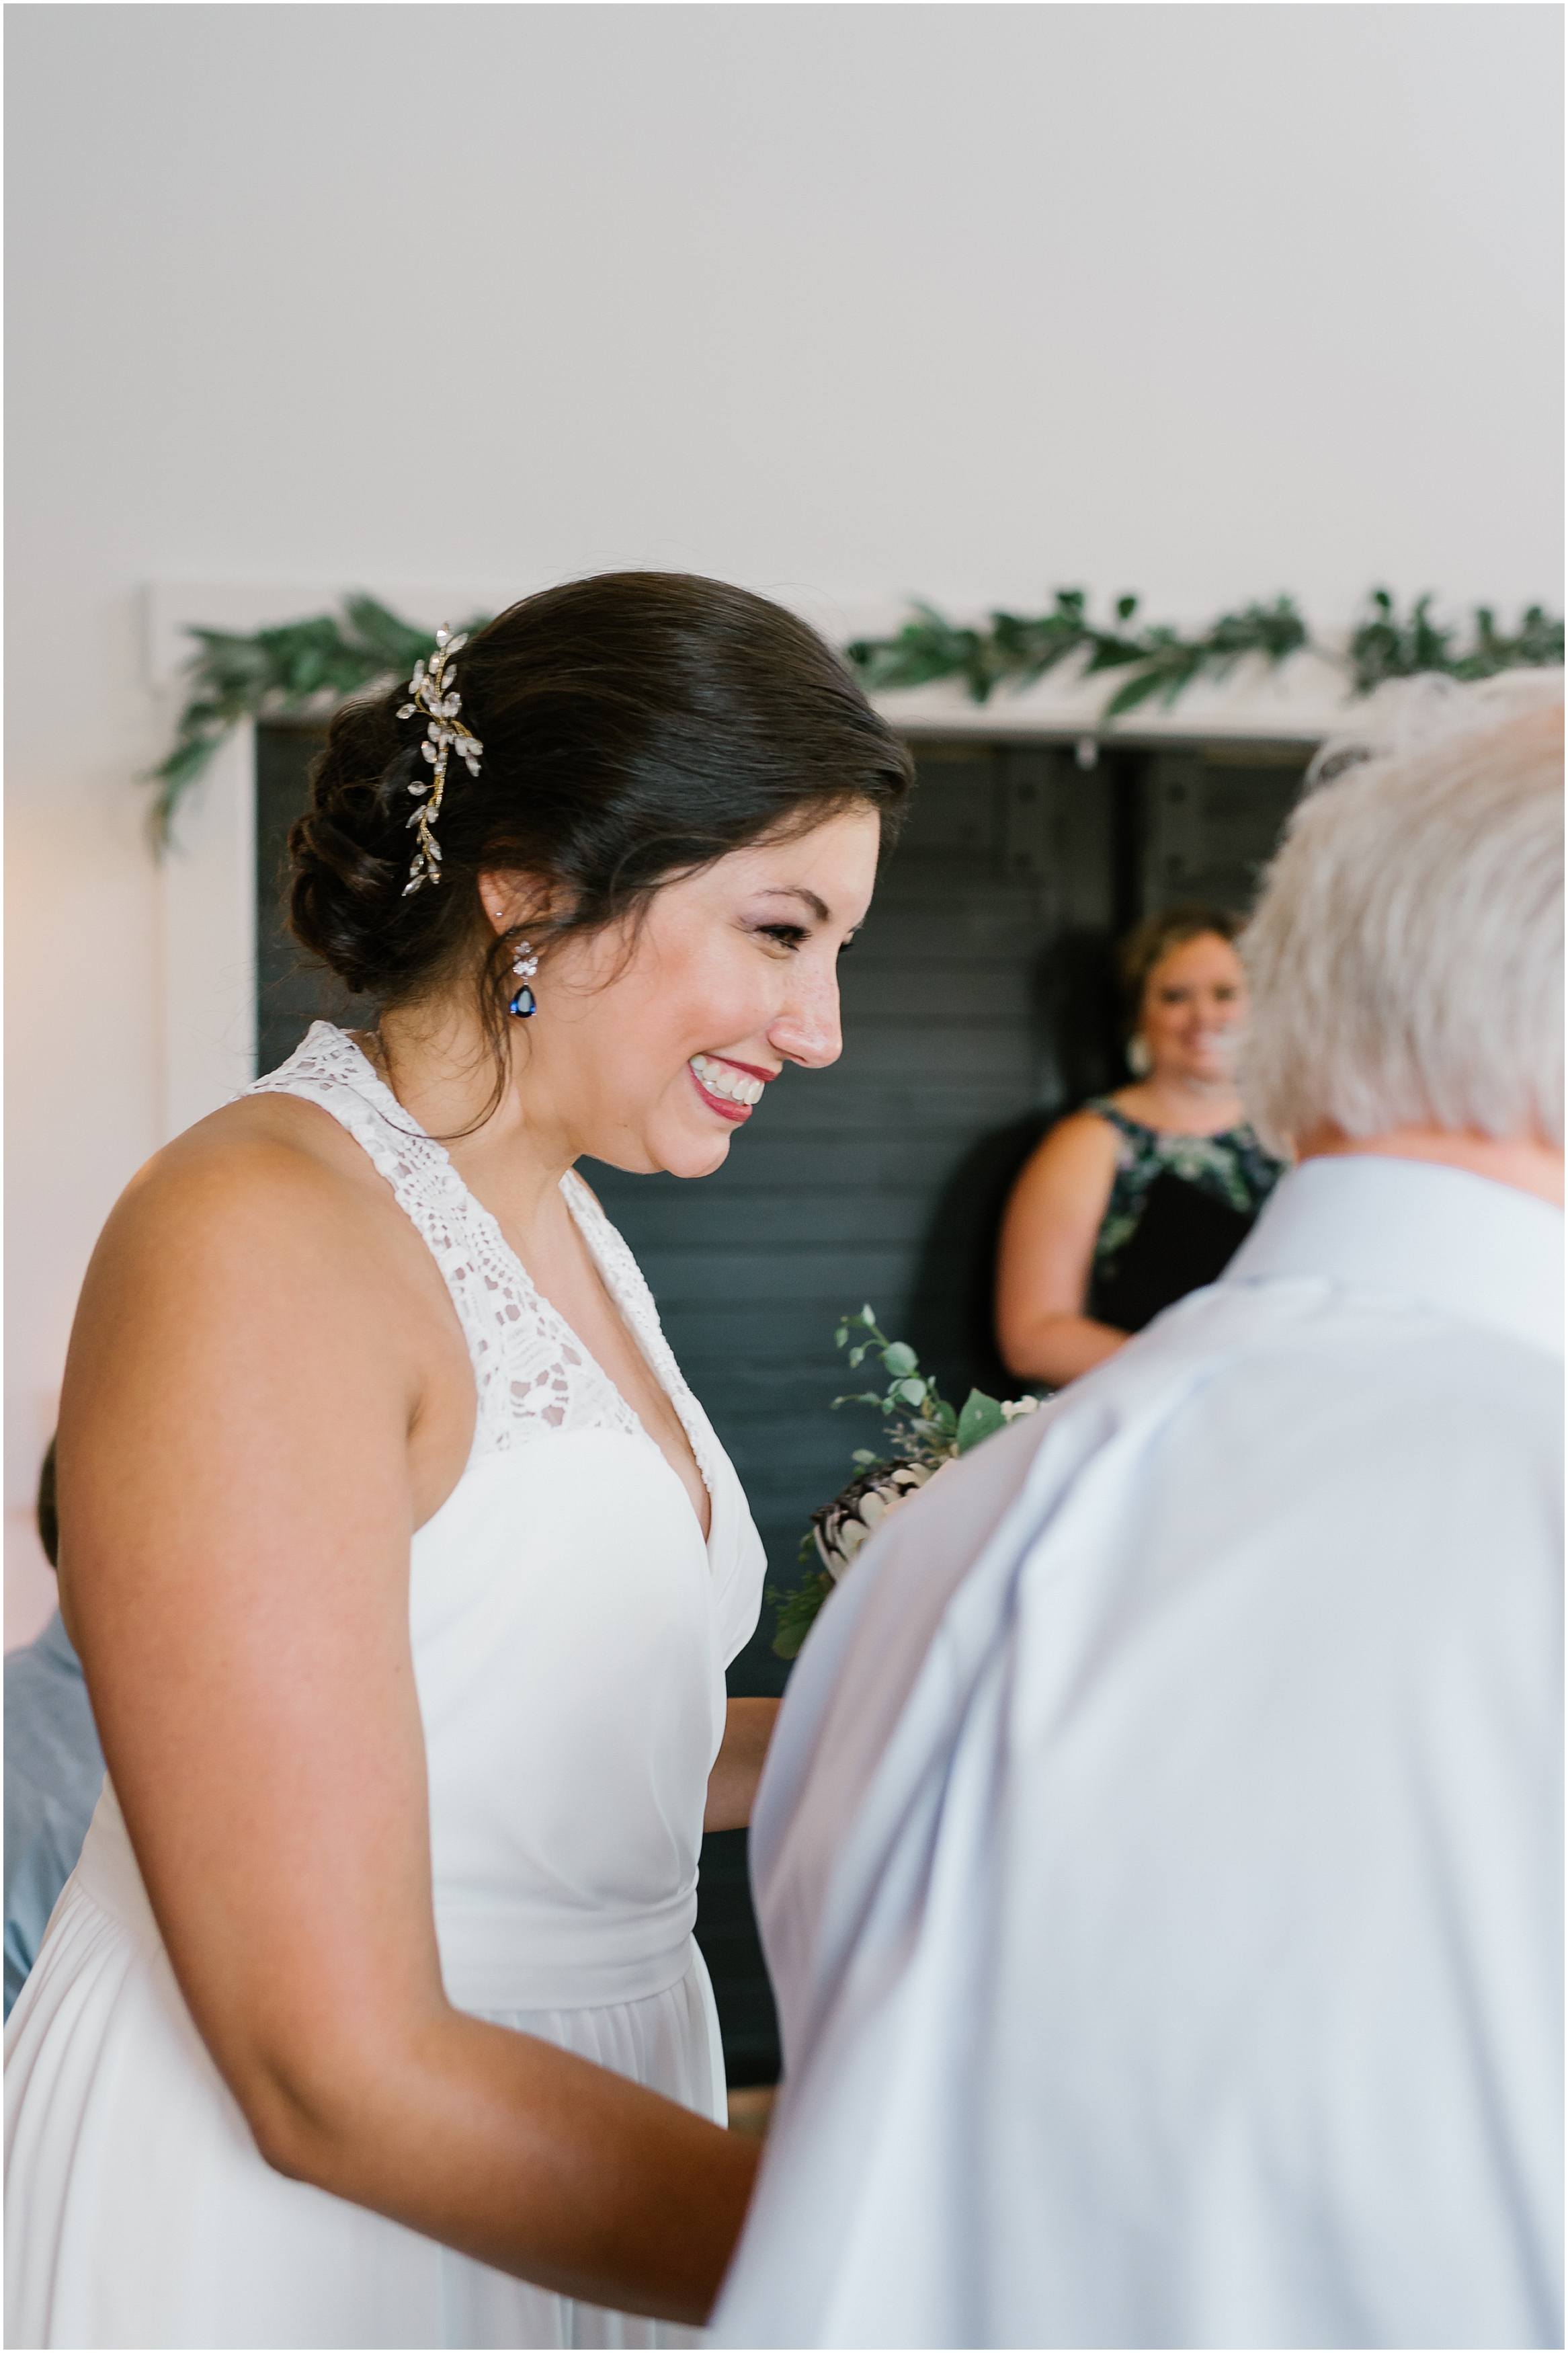 Rebecca Shehorn Photography Indianapolis Wedding Photographer Just Pop In Wedding_0668.jpg